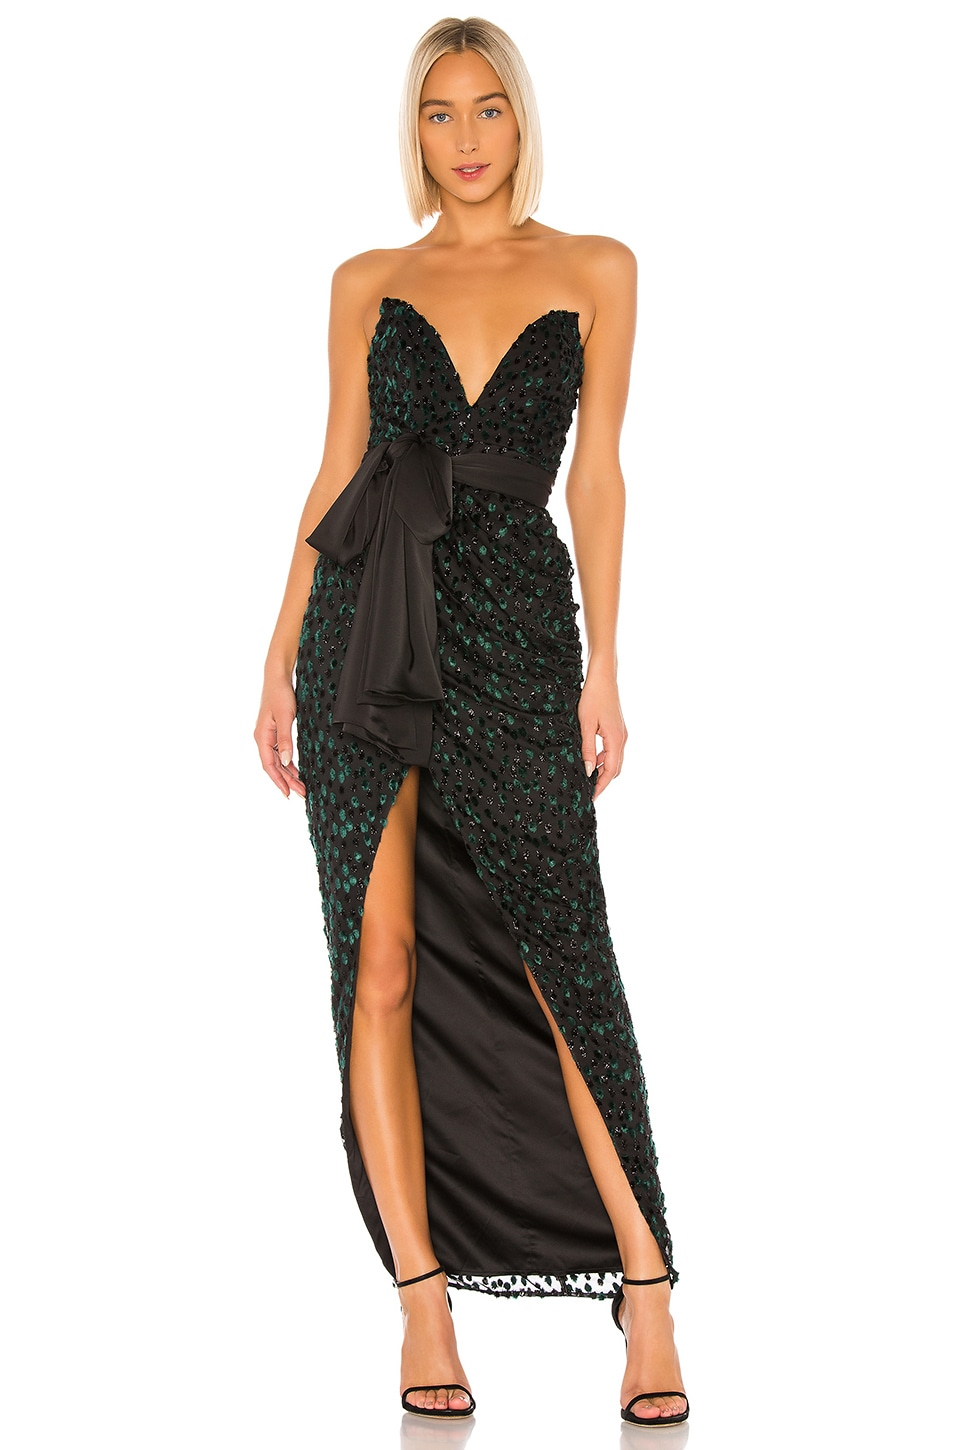 LPA Julieanne Gown in Emerald & Black